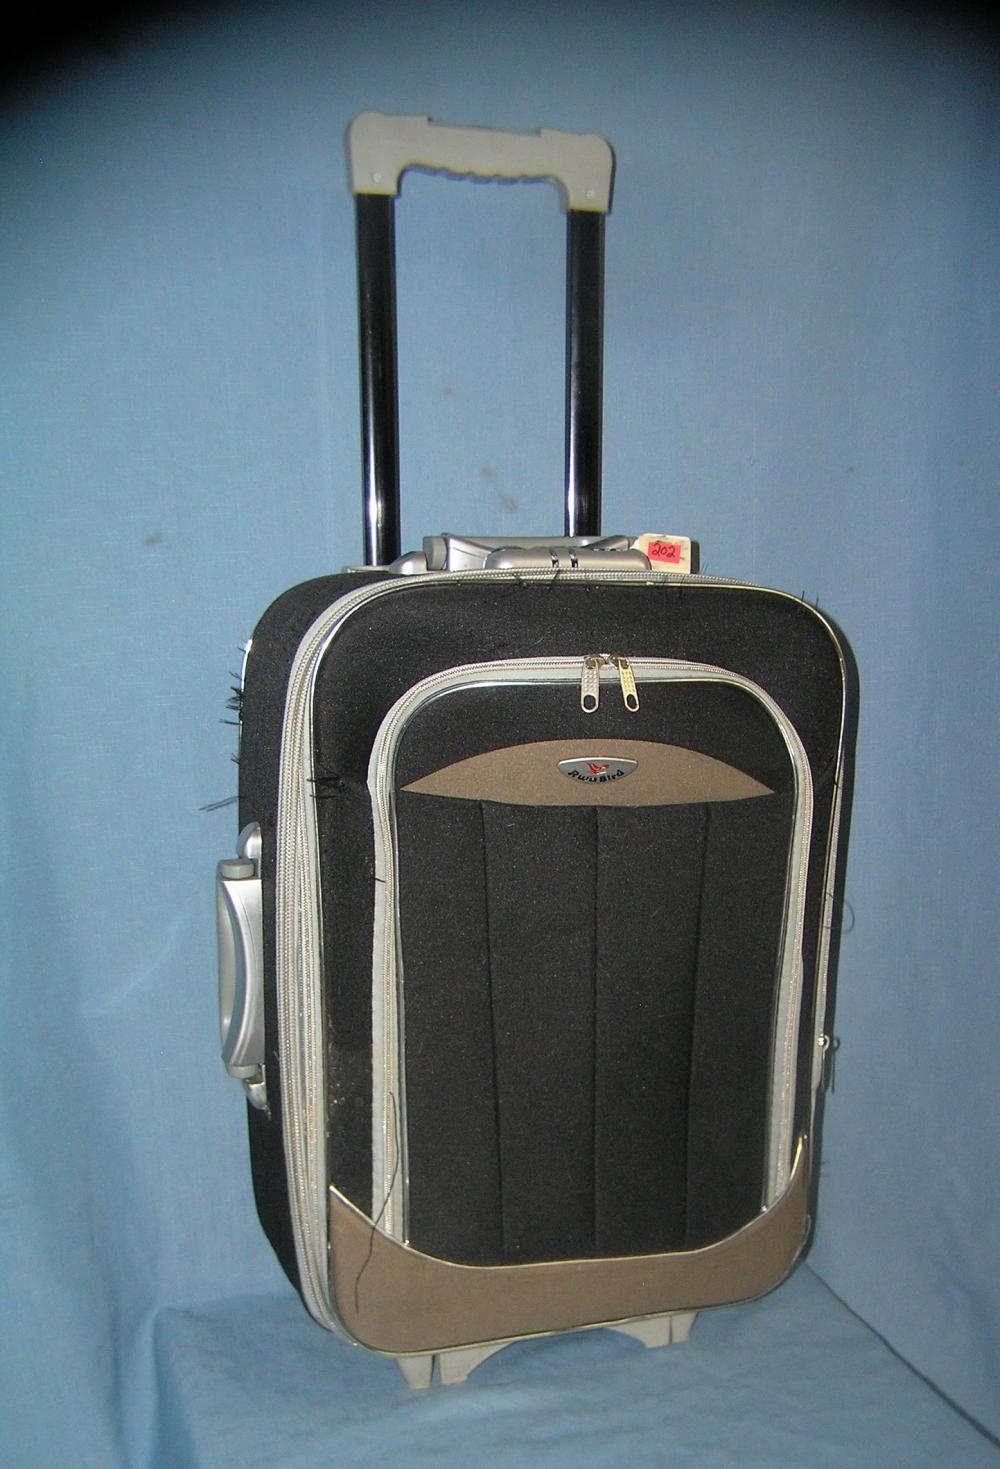 RWA BIRD MODERN TRAVEL LUGGAGE CASE